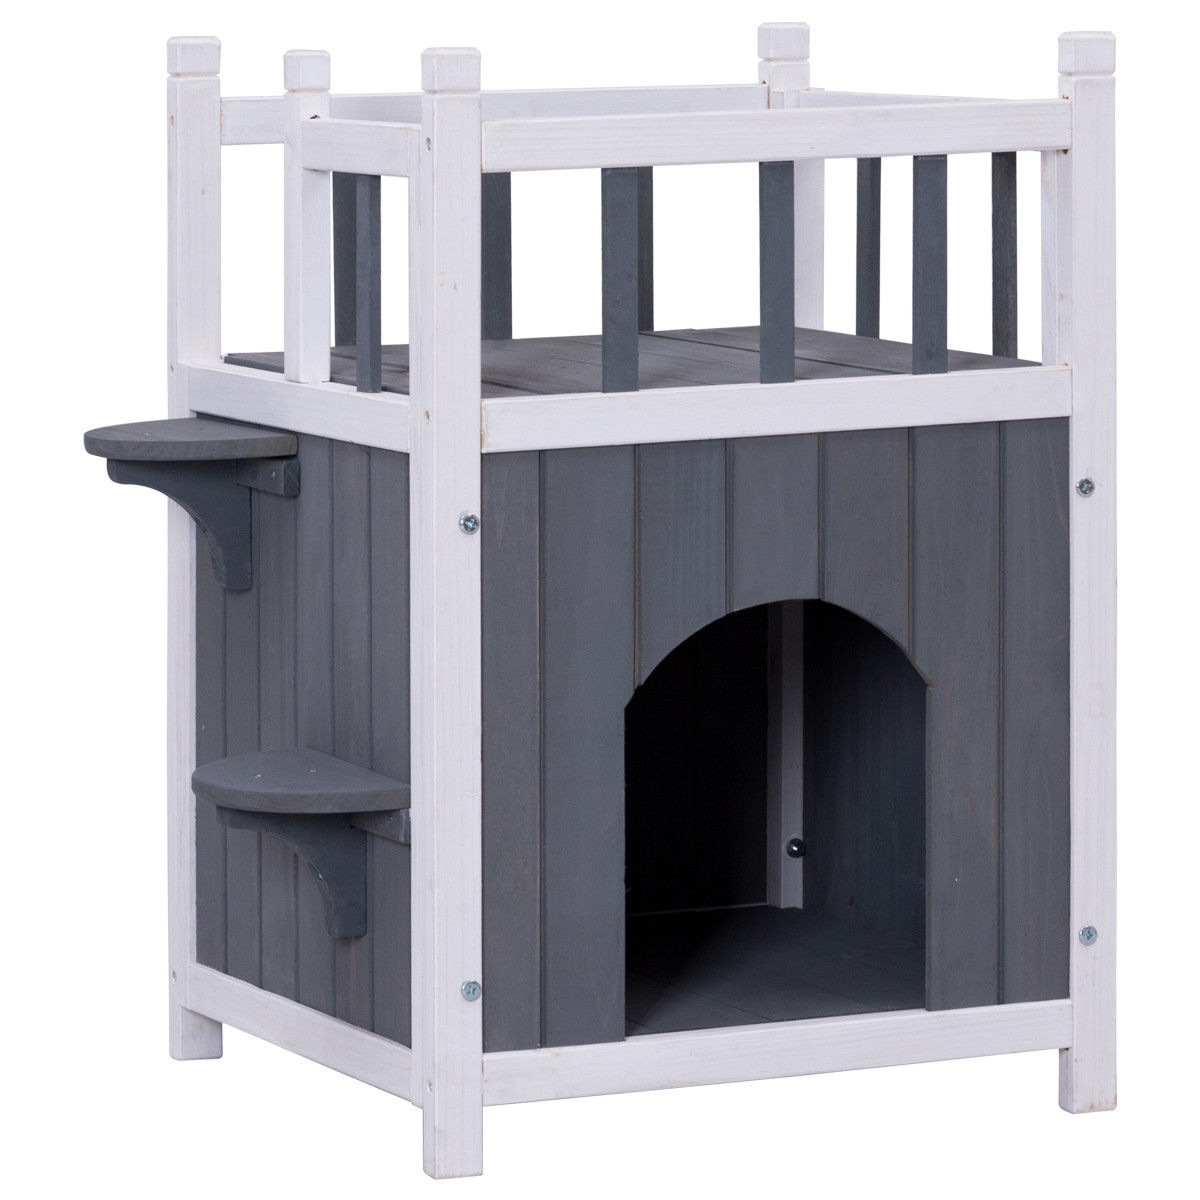 Gymax Wooden Cat Pet Home with Balcony Pet House Small Dog Indoor Outdoor Shelter - image 4 de 9